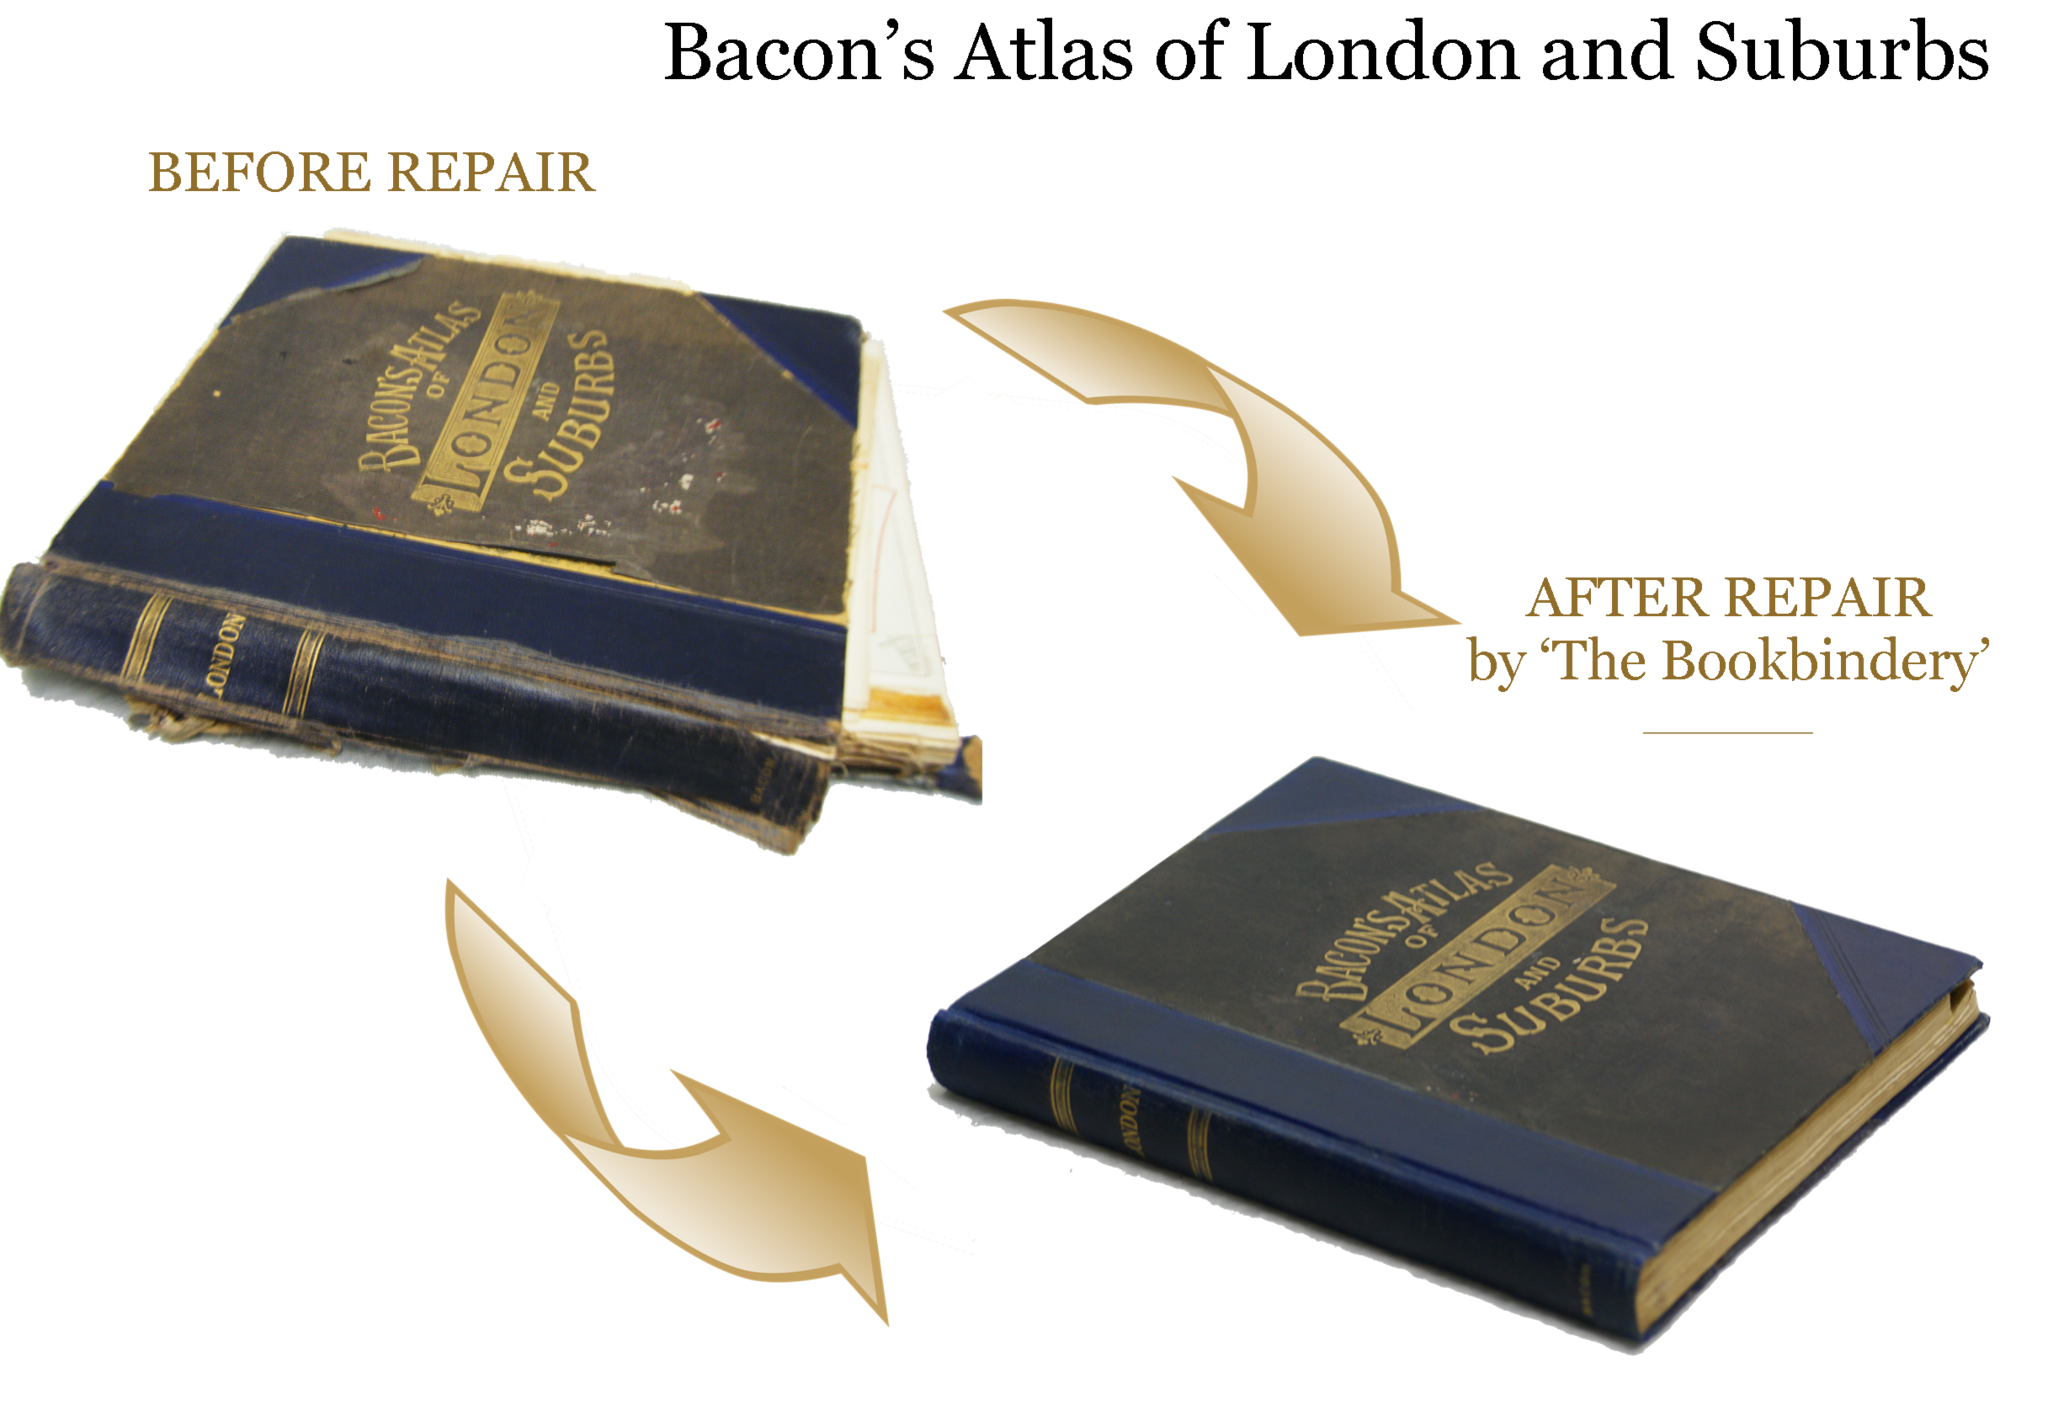 General Book Repair by the experts | THE BOOKBINDERY - The Bookbindery